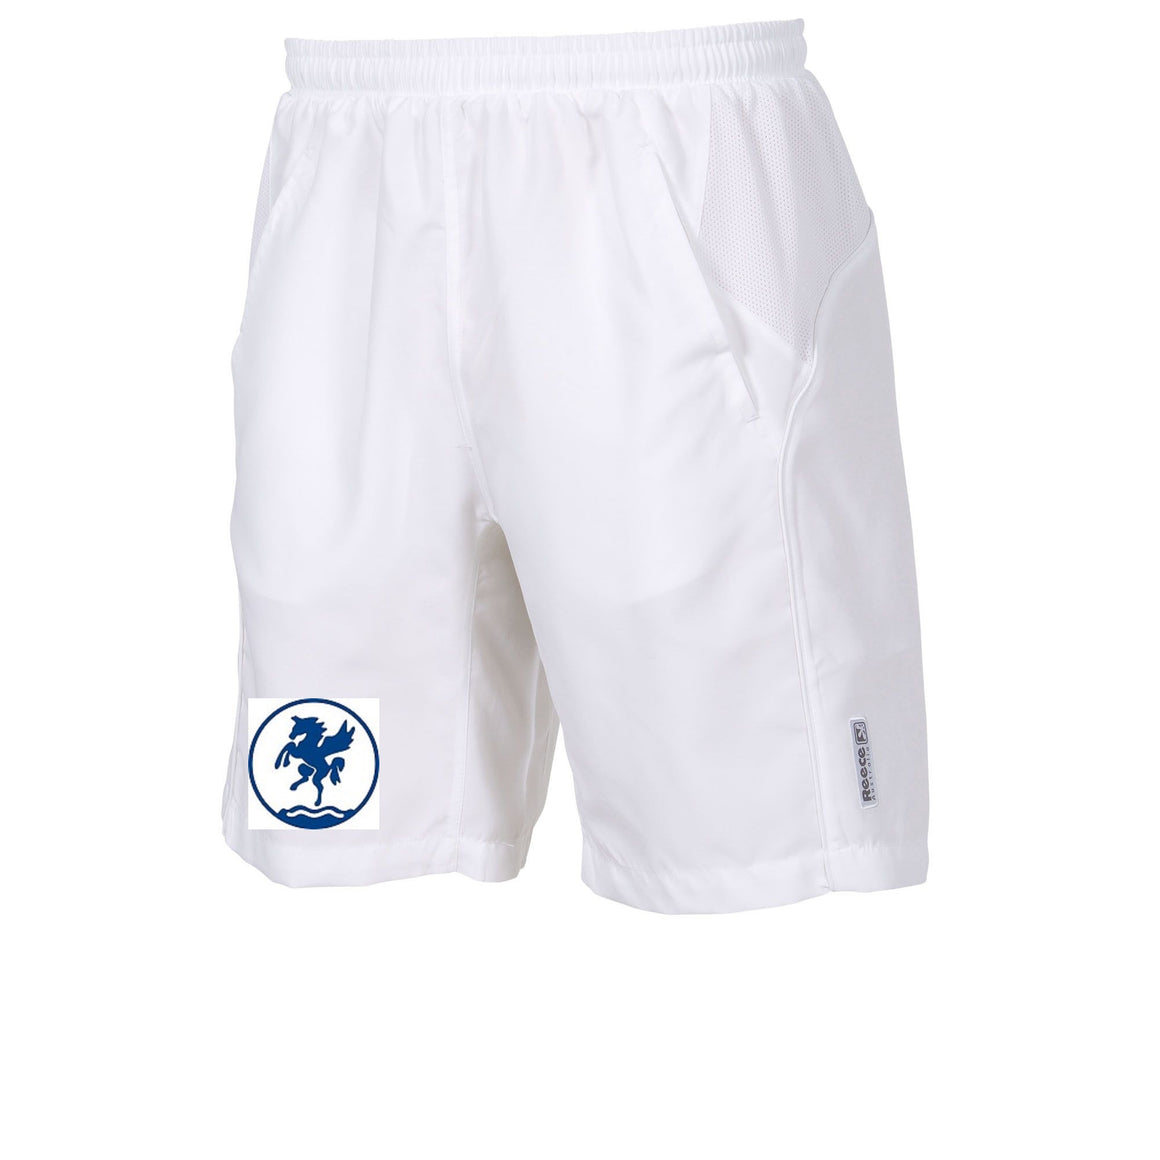 Leeds Hockey White Reece Shorts